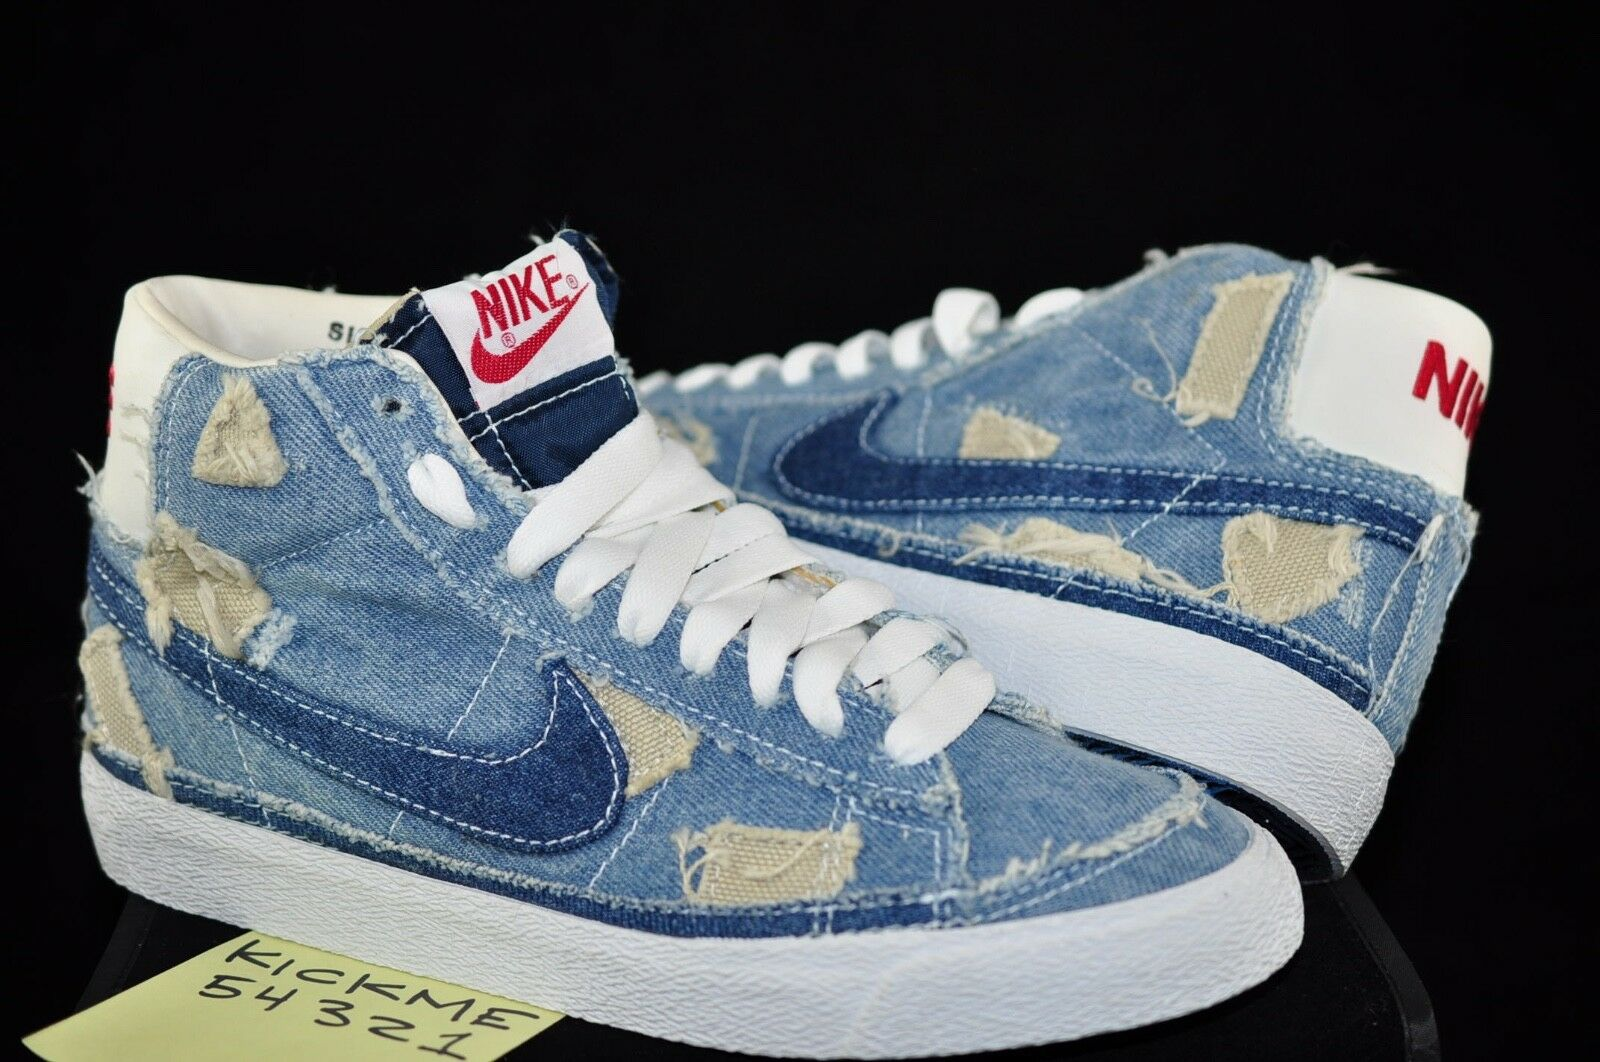 2003 NIKE WOMENS BLAZER MID TWO TONE DENIM PATCH WORK 7 SUPREME OFF WHITE DS